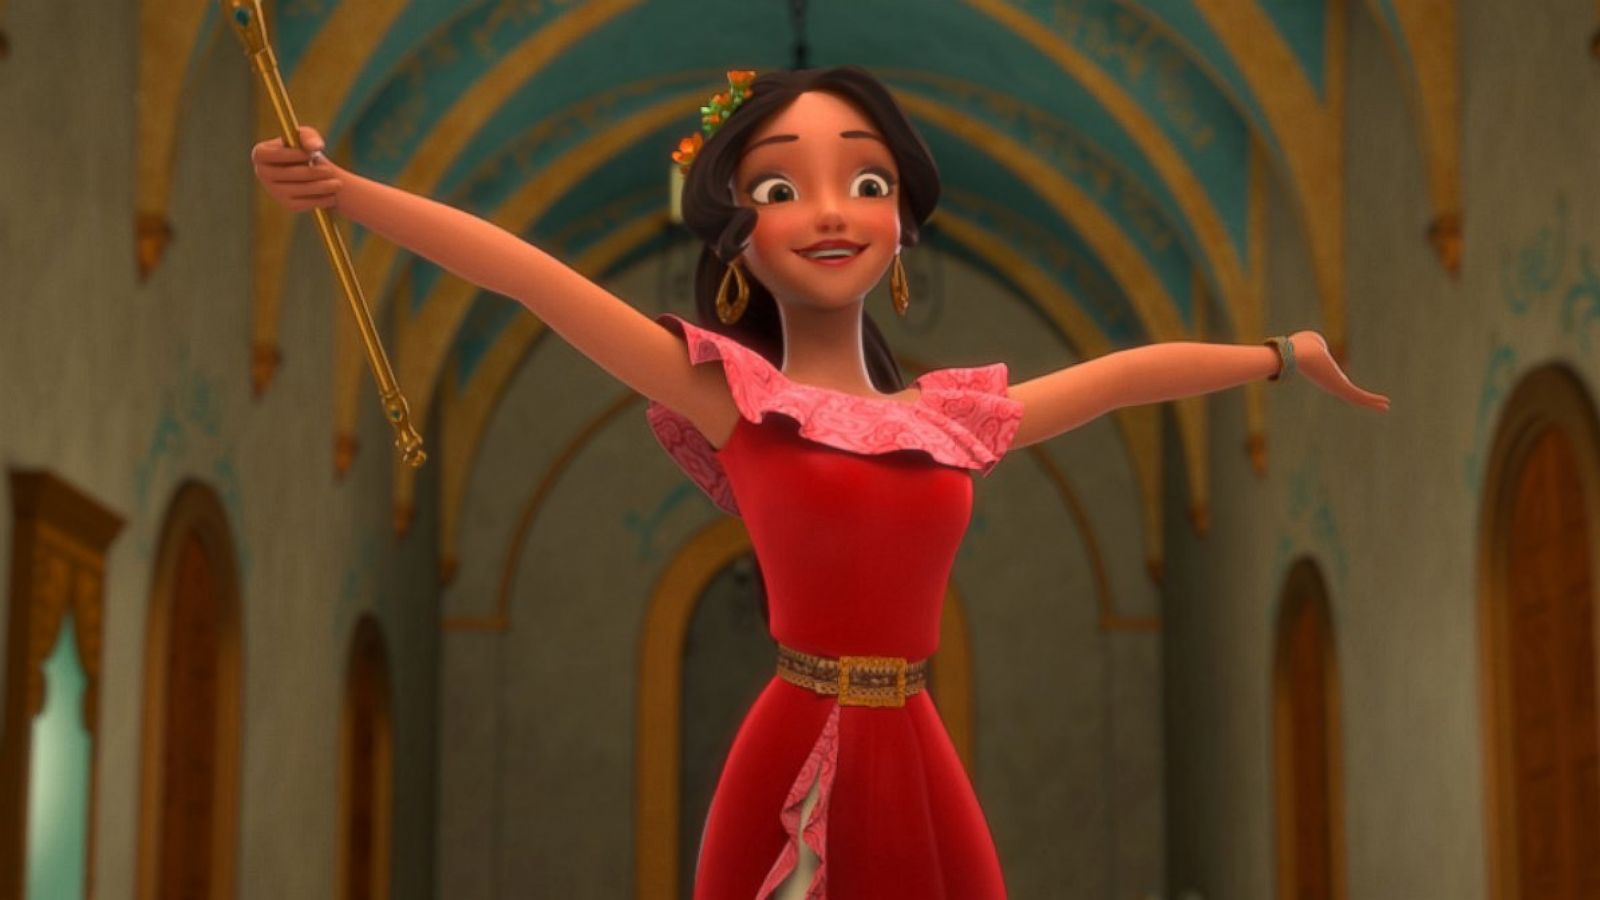 10 Things You Should Know About Disneys Newest Princess Elena Of